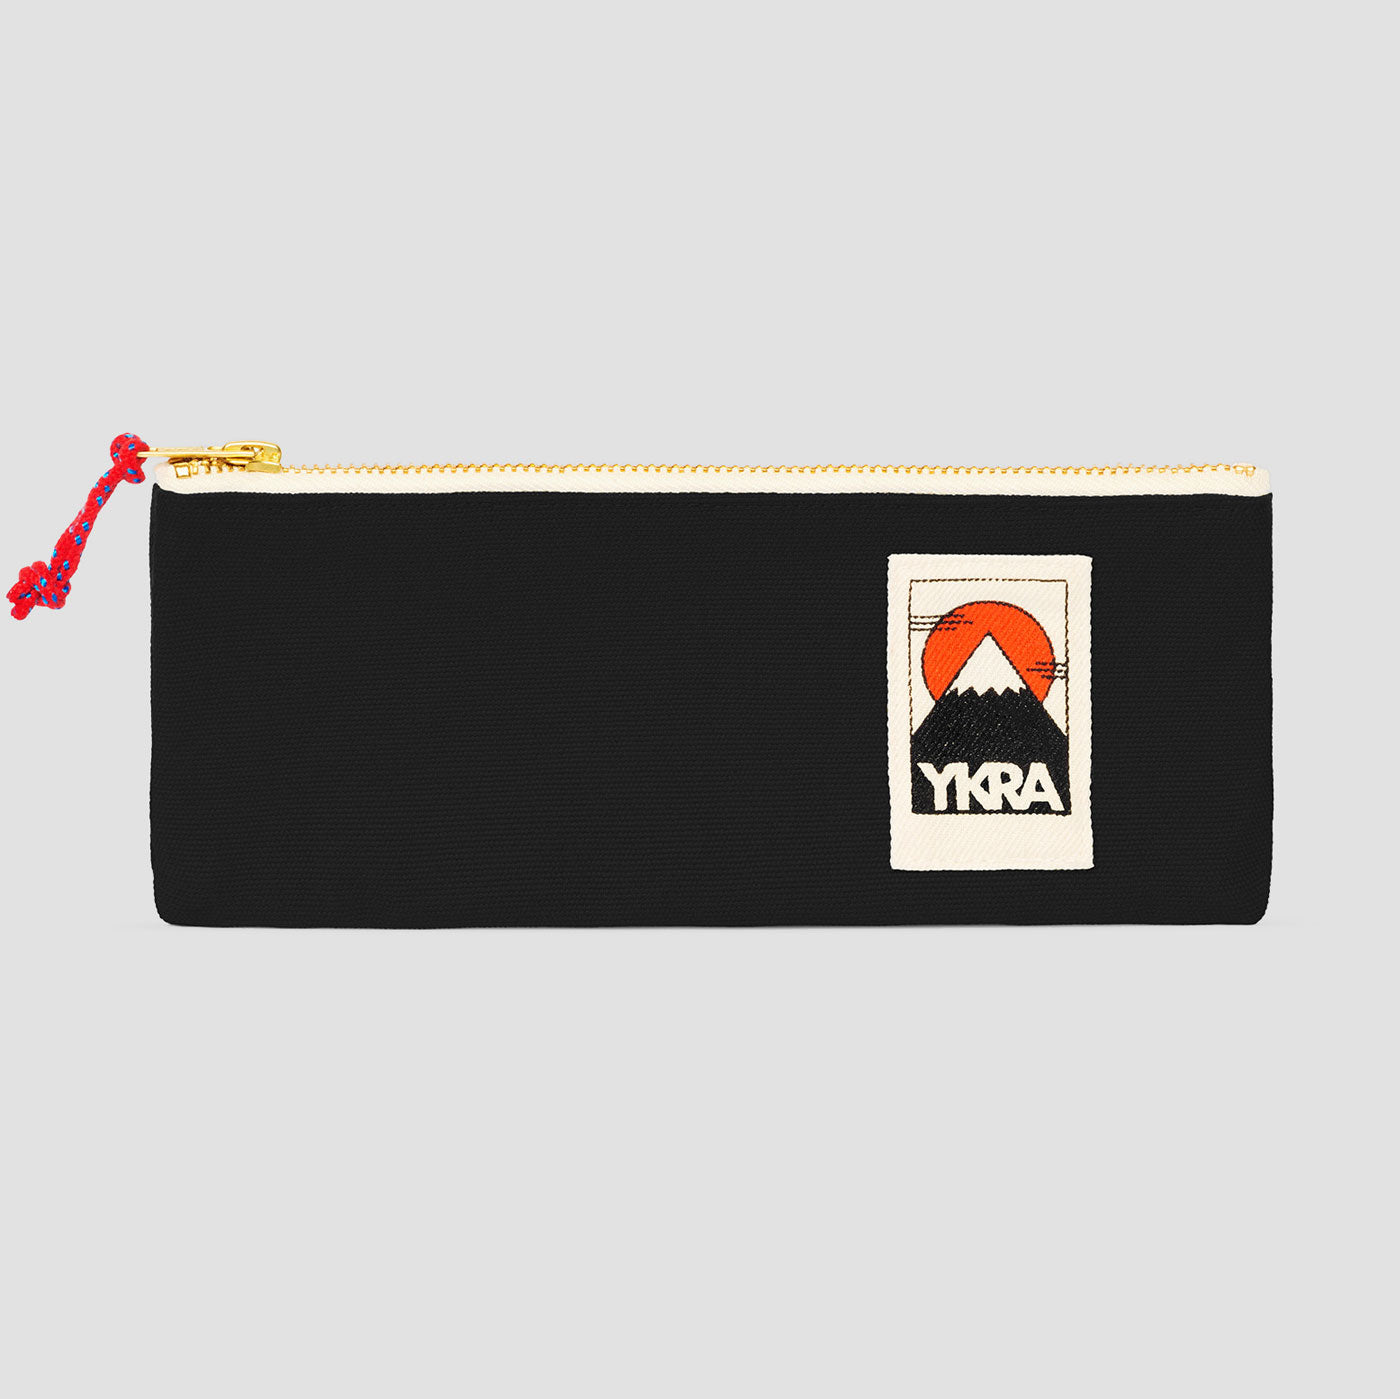 YKRA PENCIL CASE - BLACK